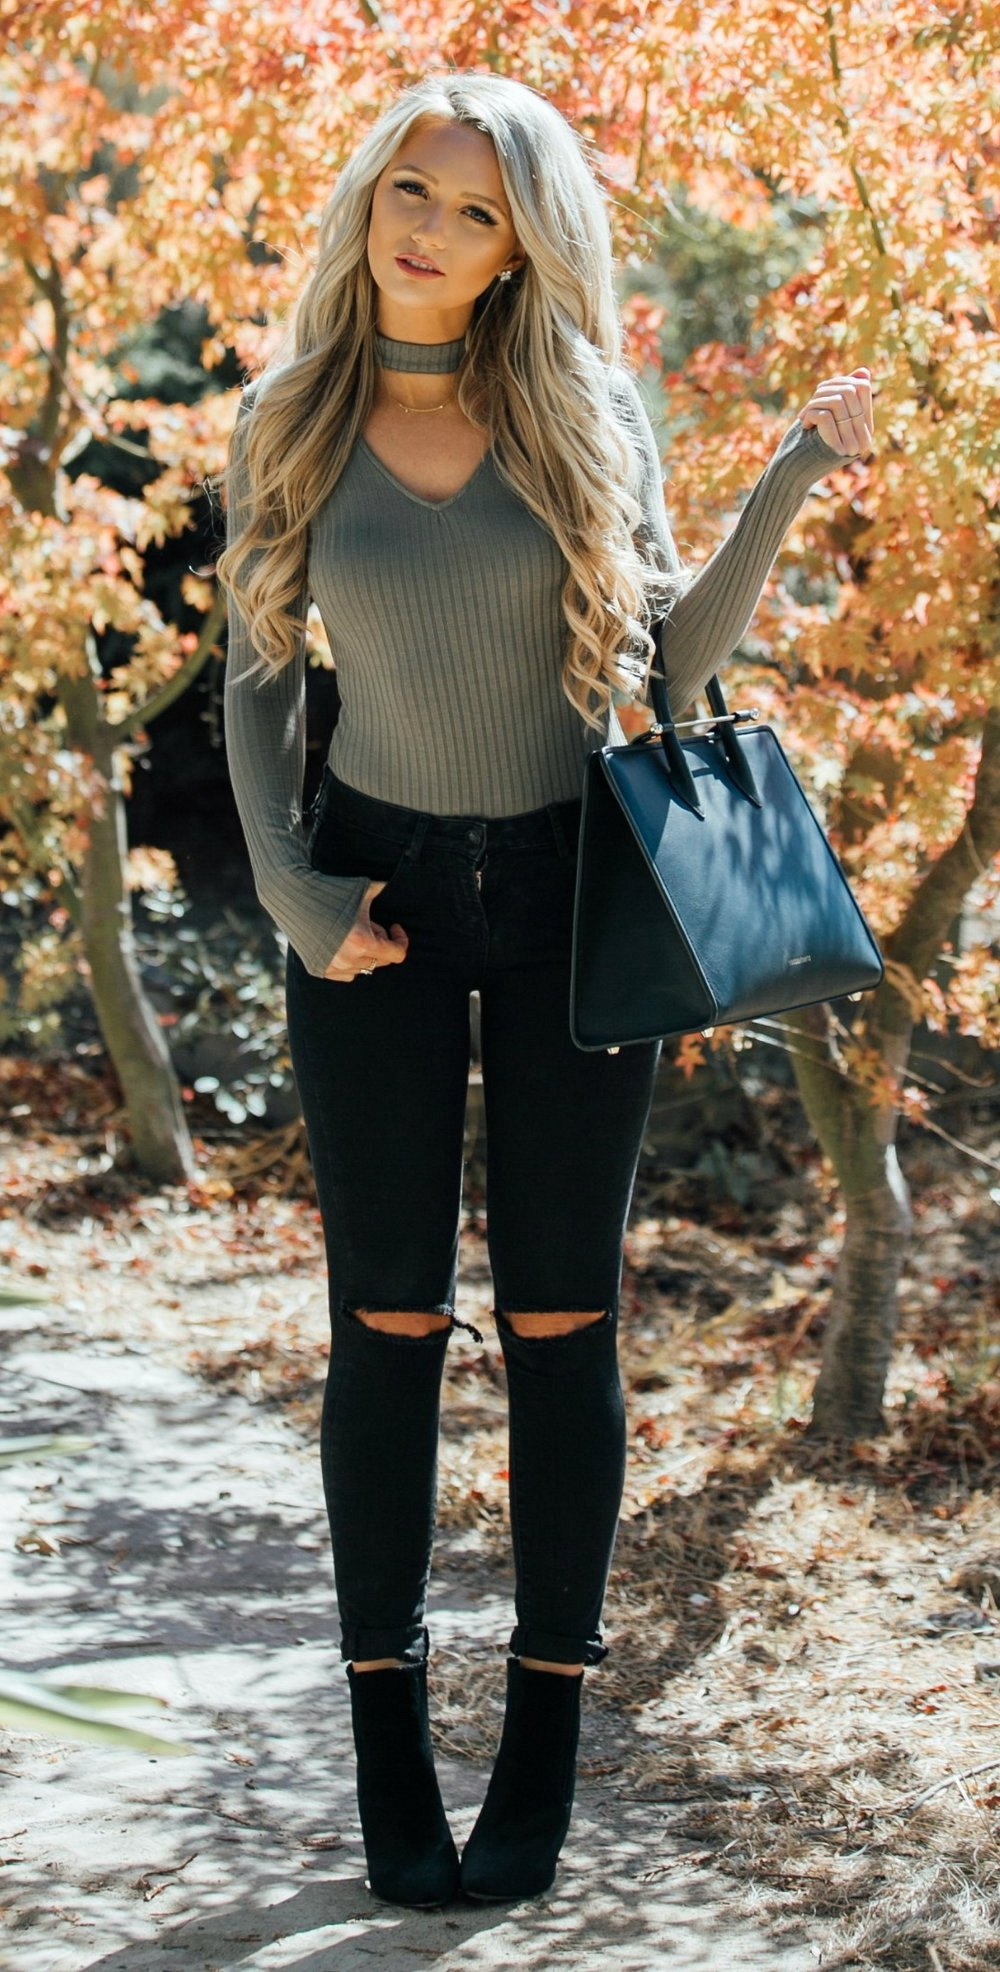 Trendy winter Outfit ideas for women - Fashion 2D